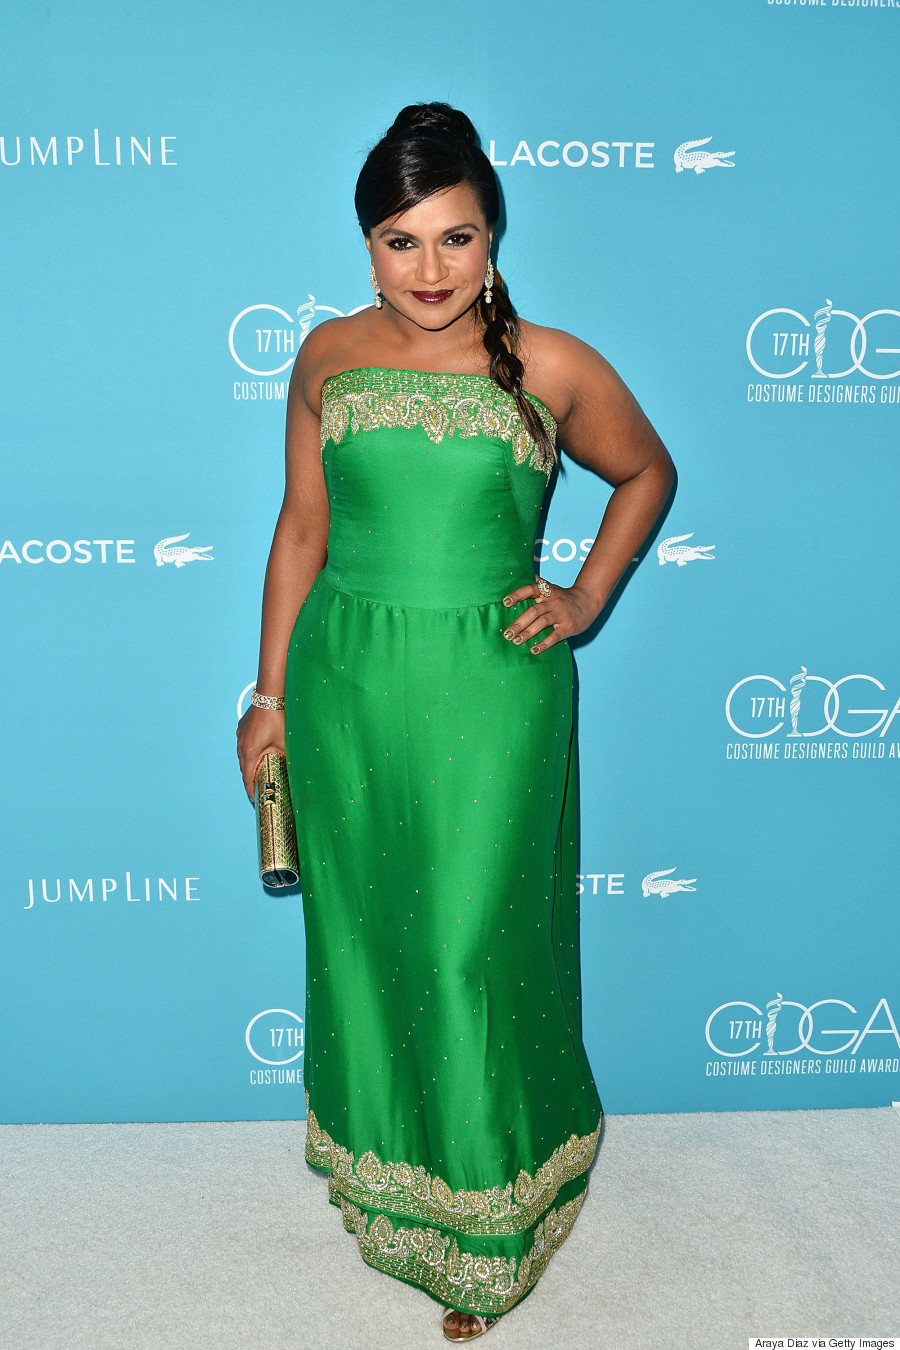 Mindy Kaling Channels Bollywood In Gorgeous Green Dress